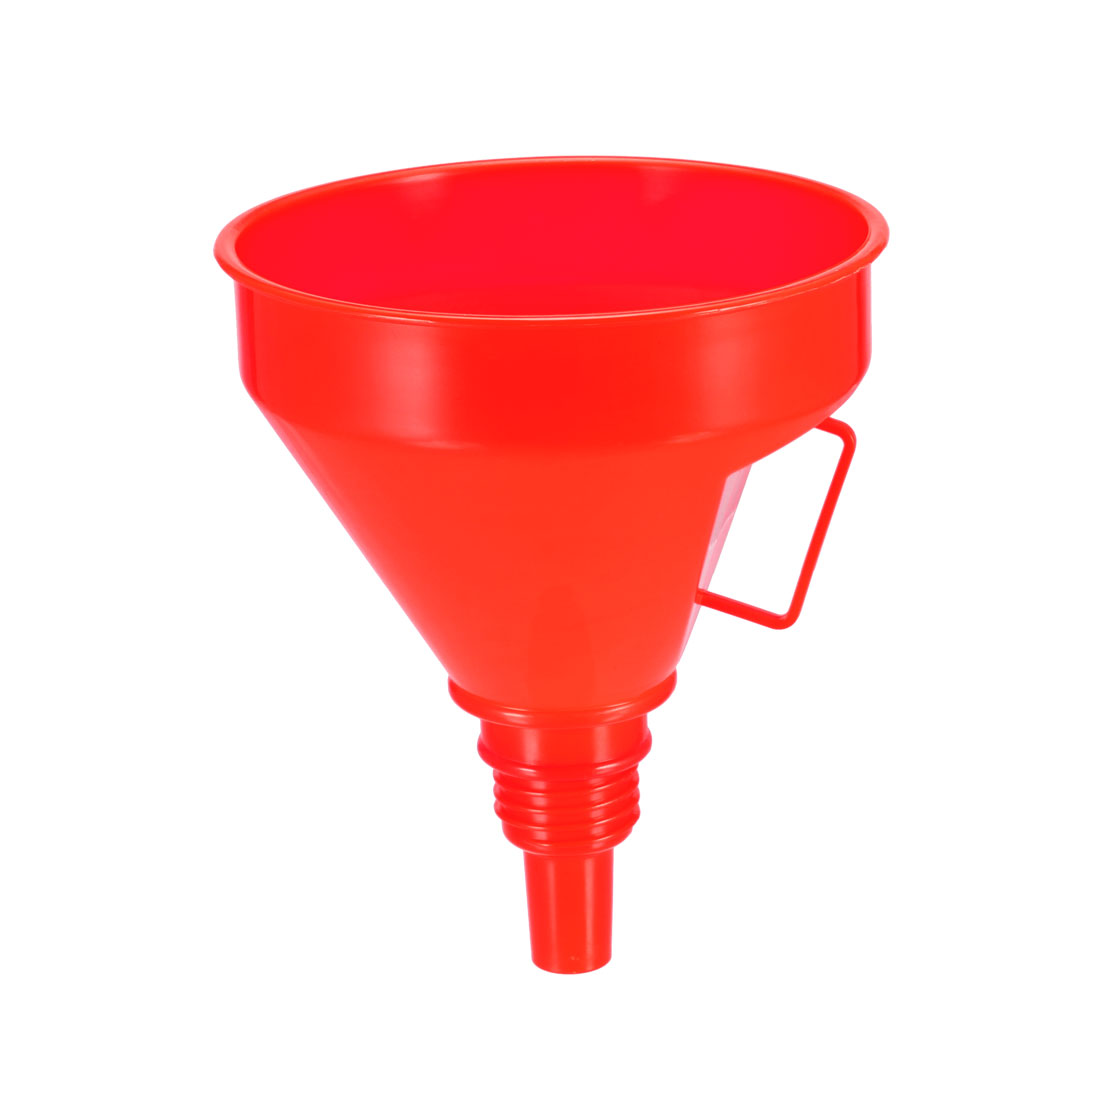 Filter Funnel 5.3 inch Plastic Feul Funnel Red for Petrol Engine Oil Water Fuel